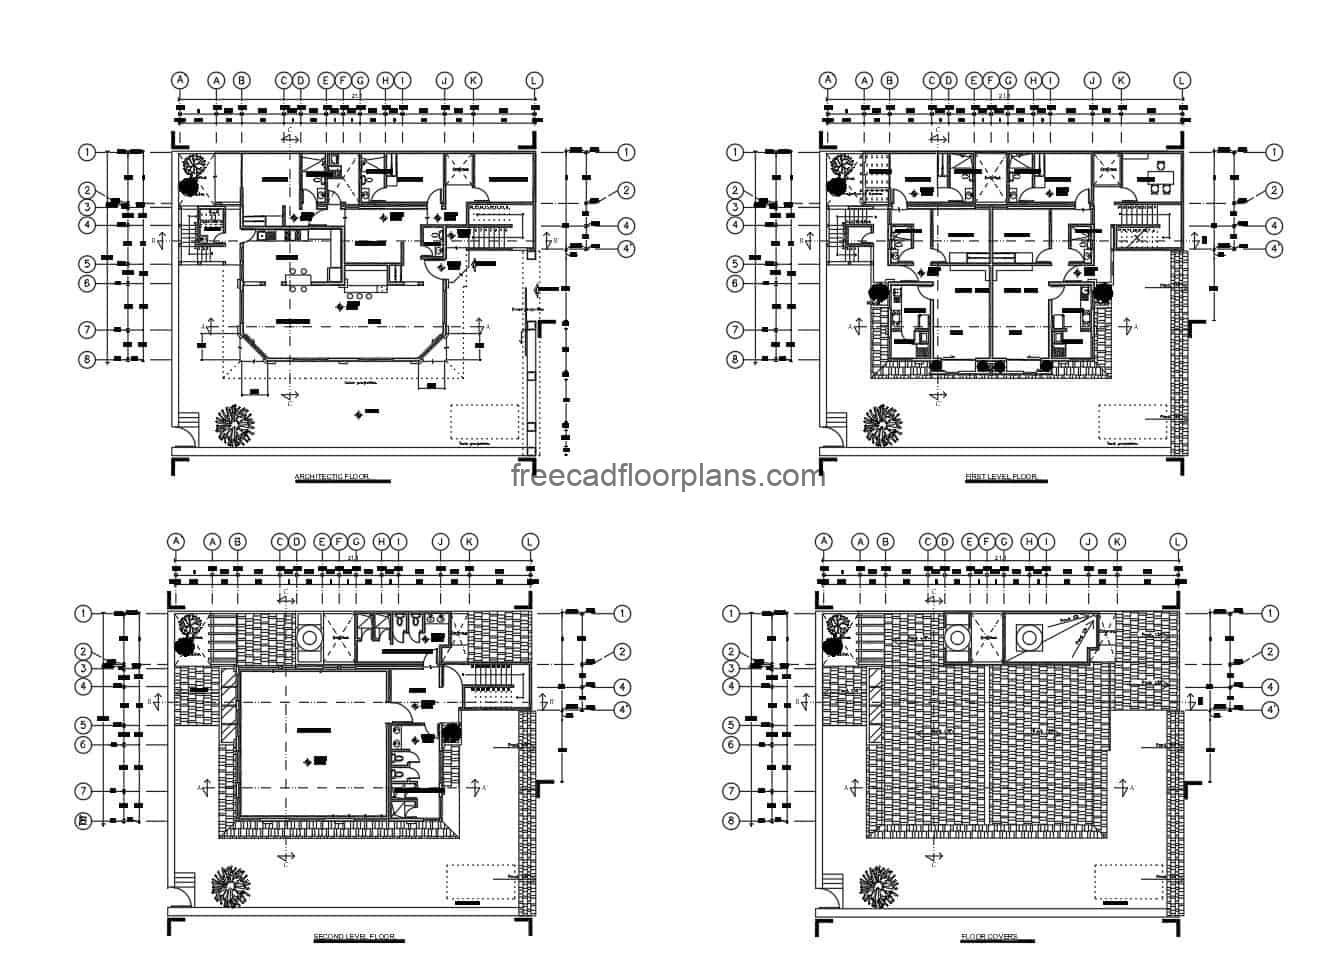 Family housing with two different floors for free download, architectural design in DWG plans, dimensioned plant